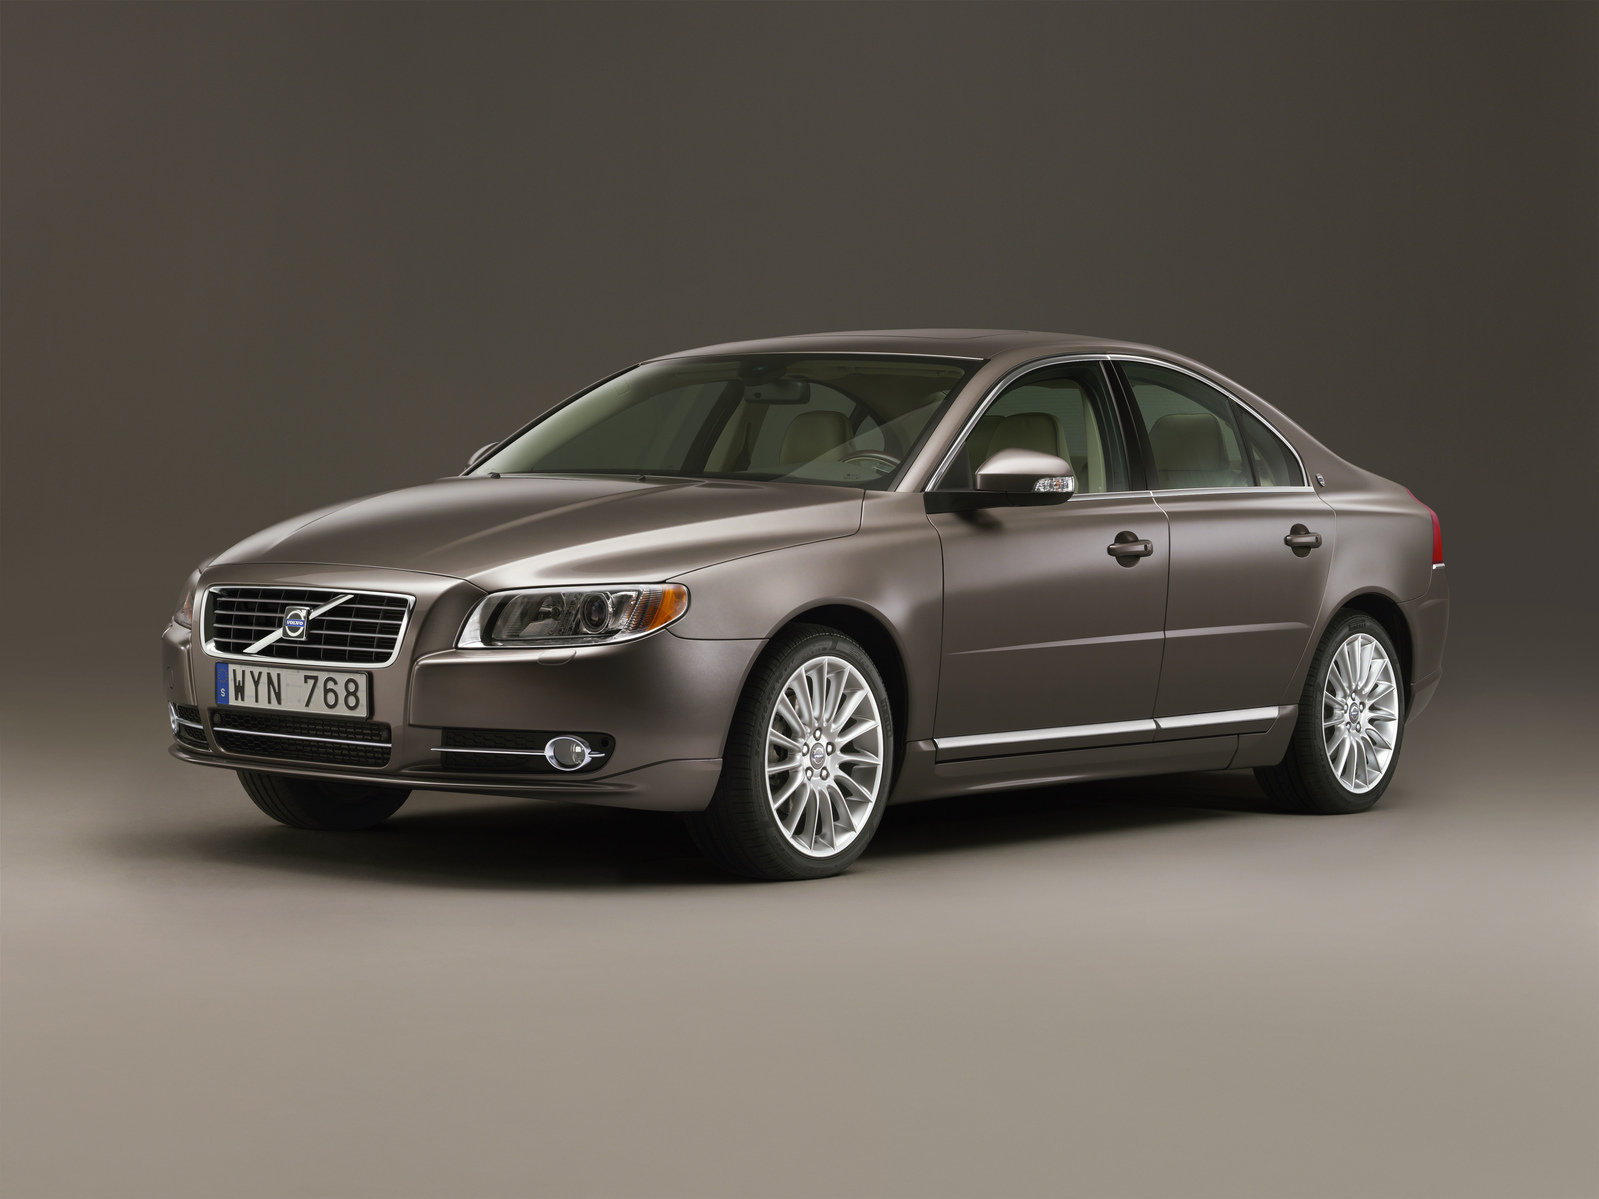 2007 volvo s80 executive edition review top speed. Black Bedroom Furniture Sets. Home Design Ideas